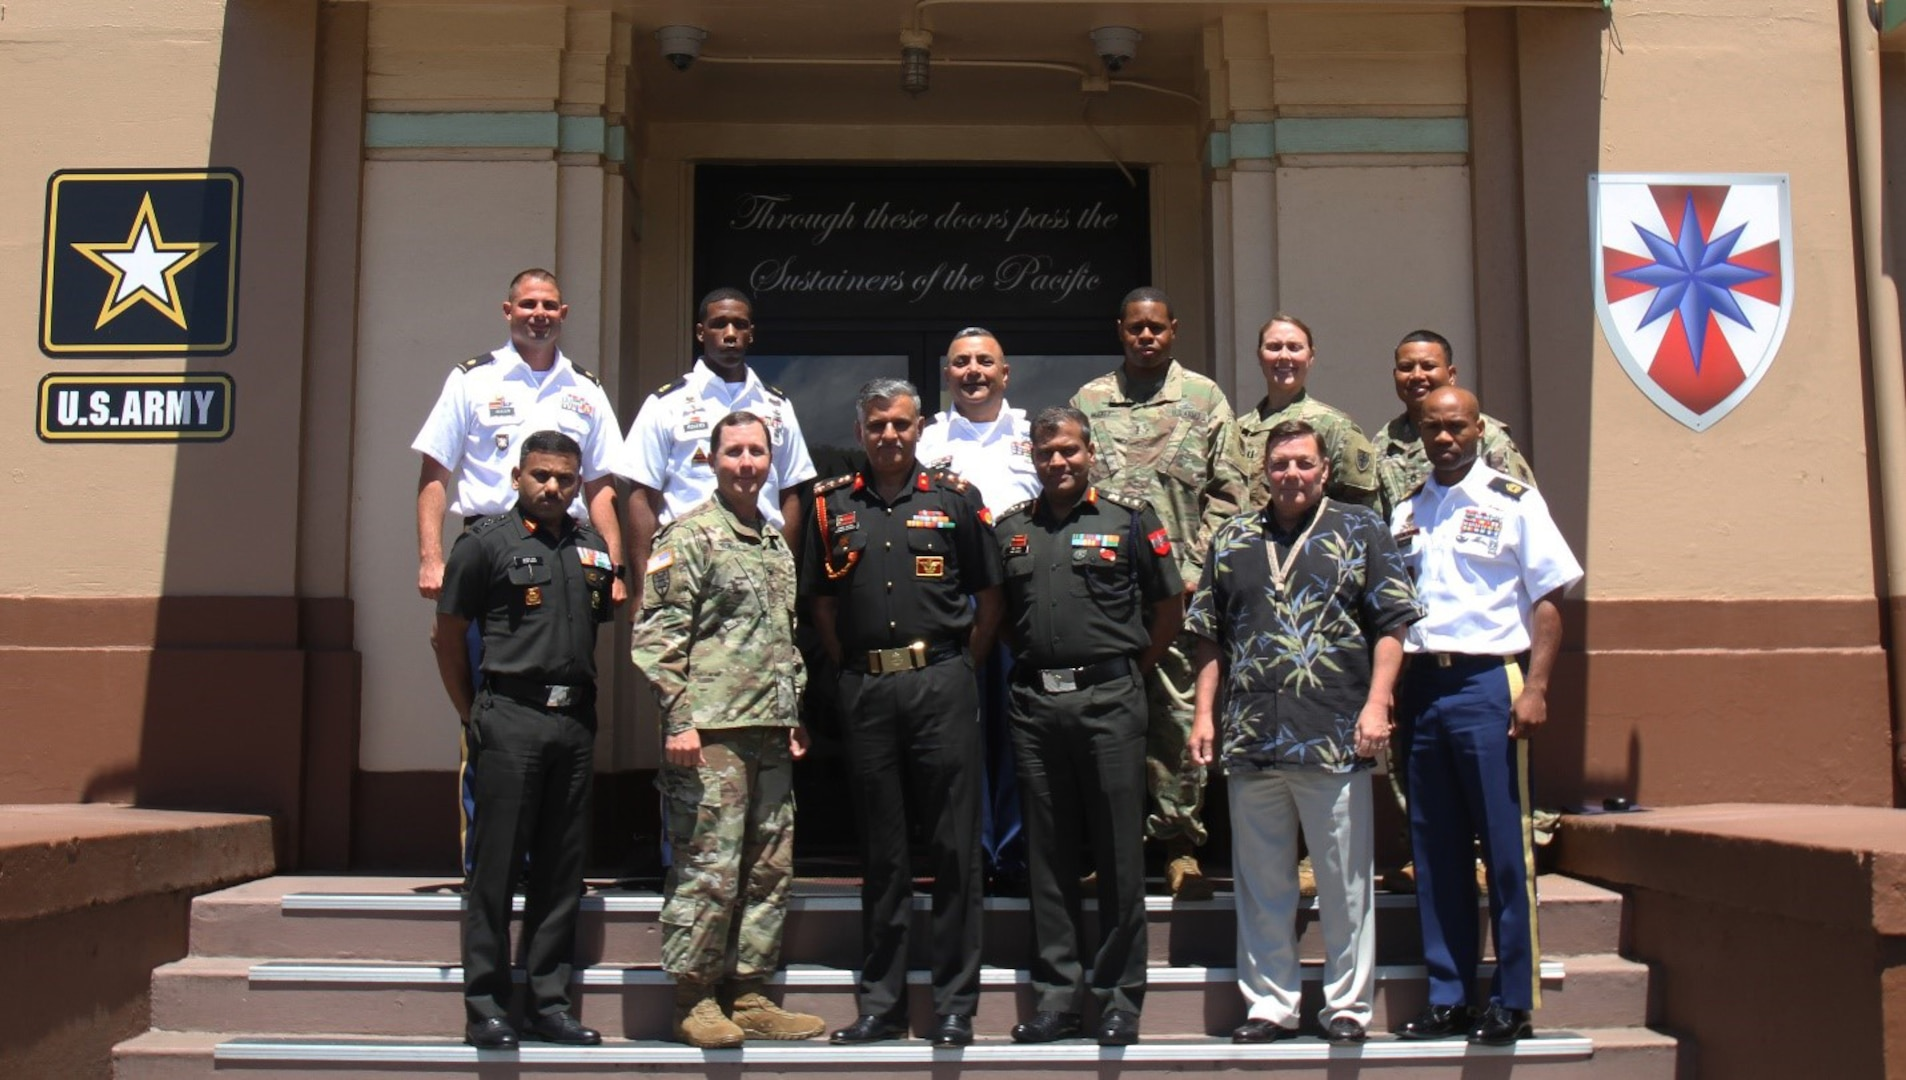 8th TSC Welcomes Indian Army Delegation for Logistics Subject Matter Expert Exchange